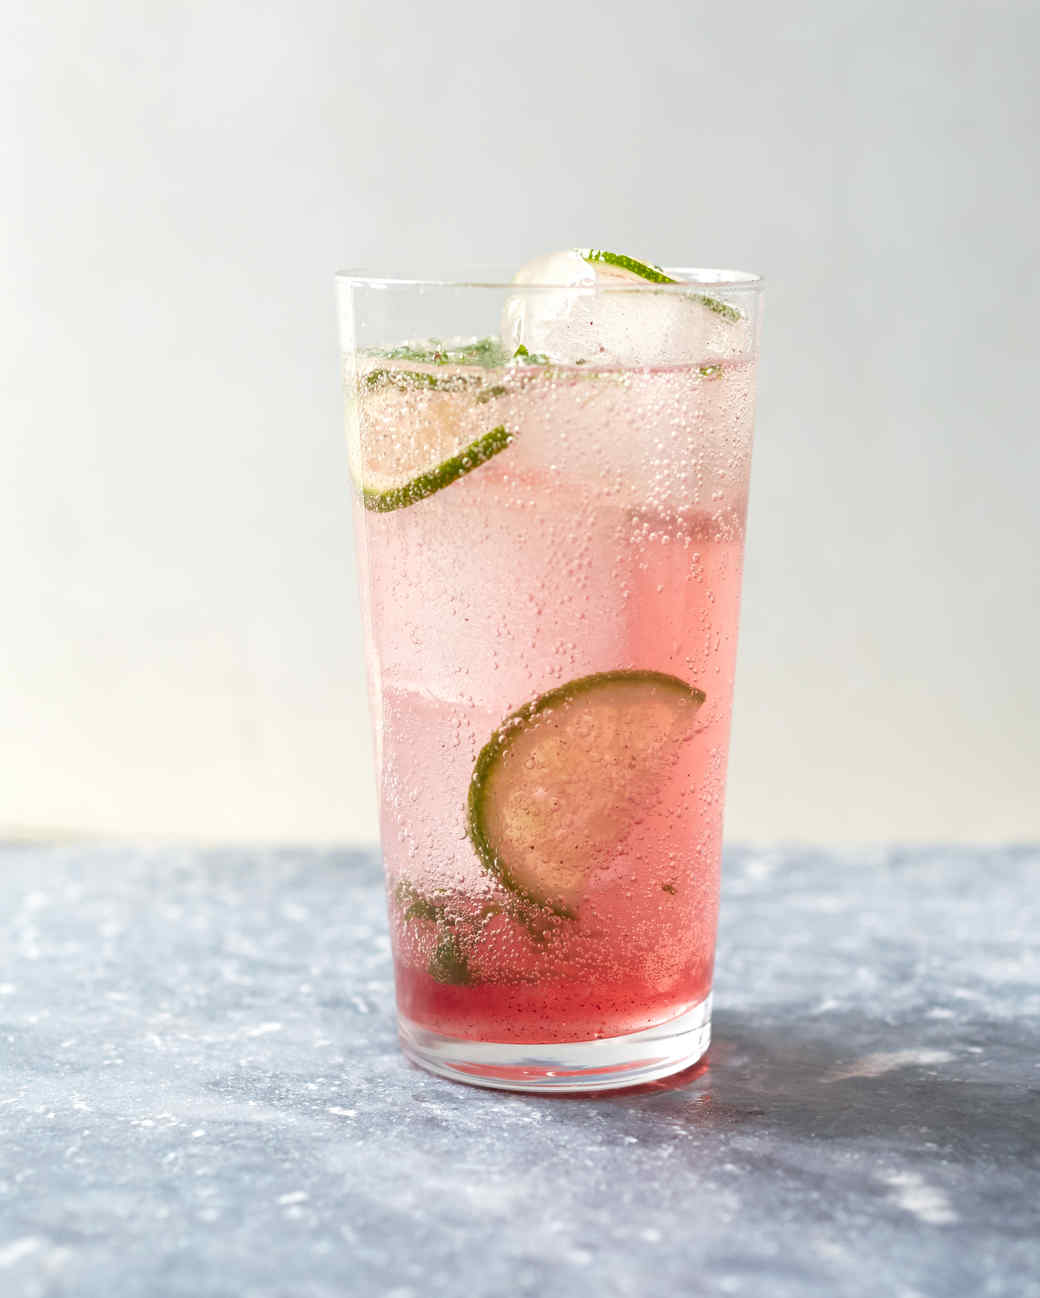 mint-fizz-drink-167-d112097-0615.jpg